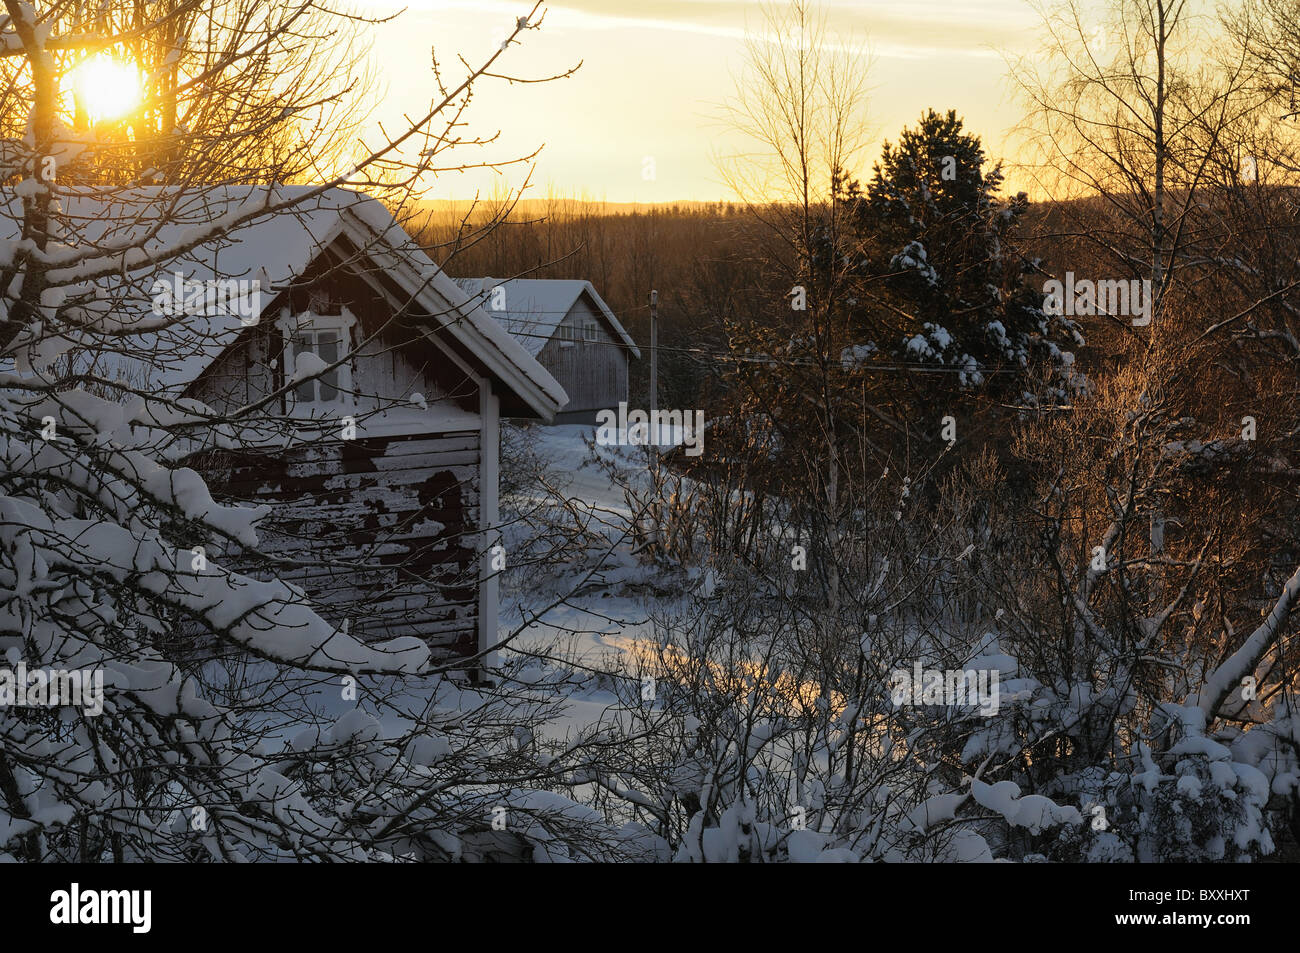 The old and abandoned hut at sunrise on the winter in Vintjarn in Central Sweden - Stock Image